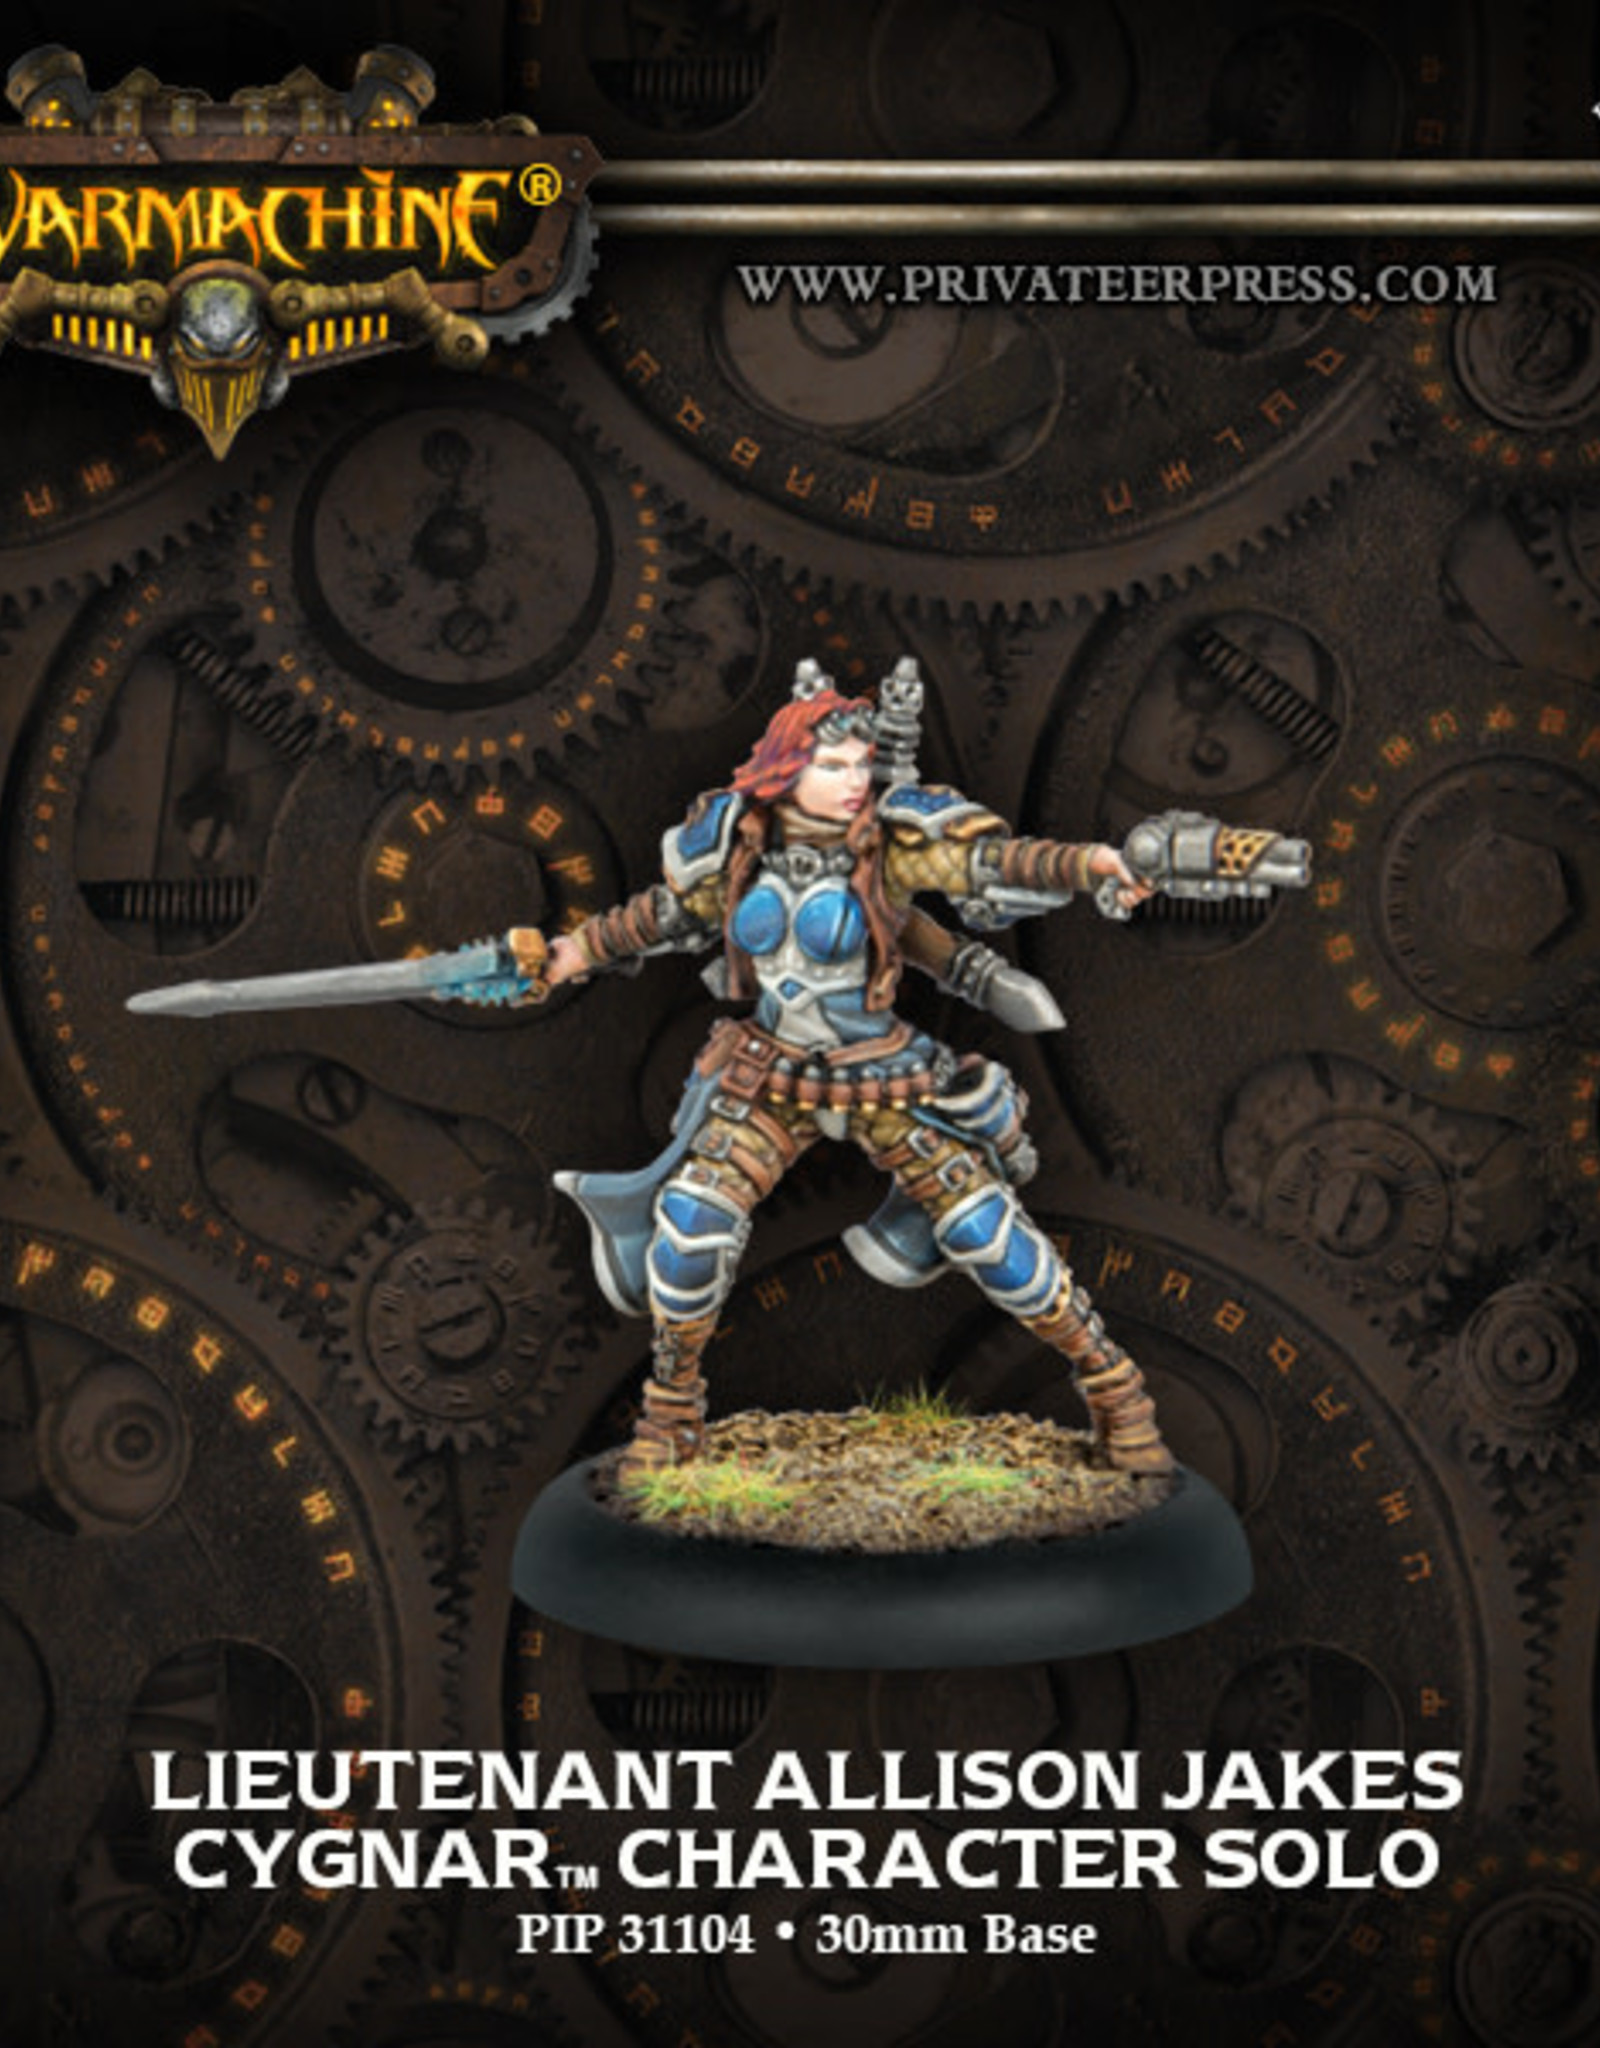 Warmachine Cygnar - Allison Jakes